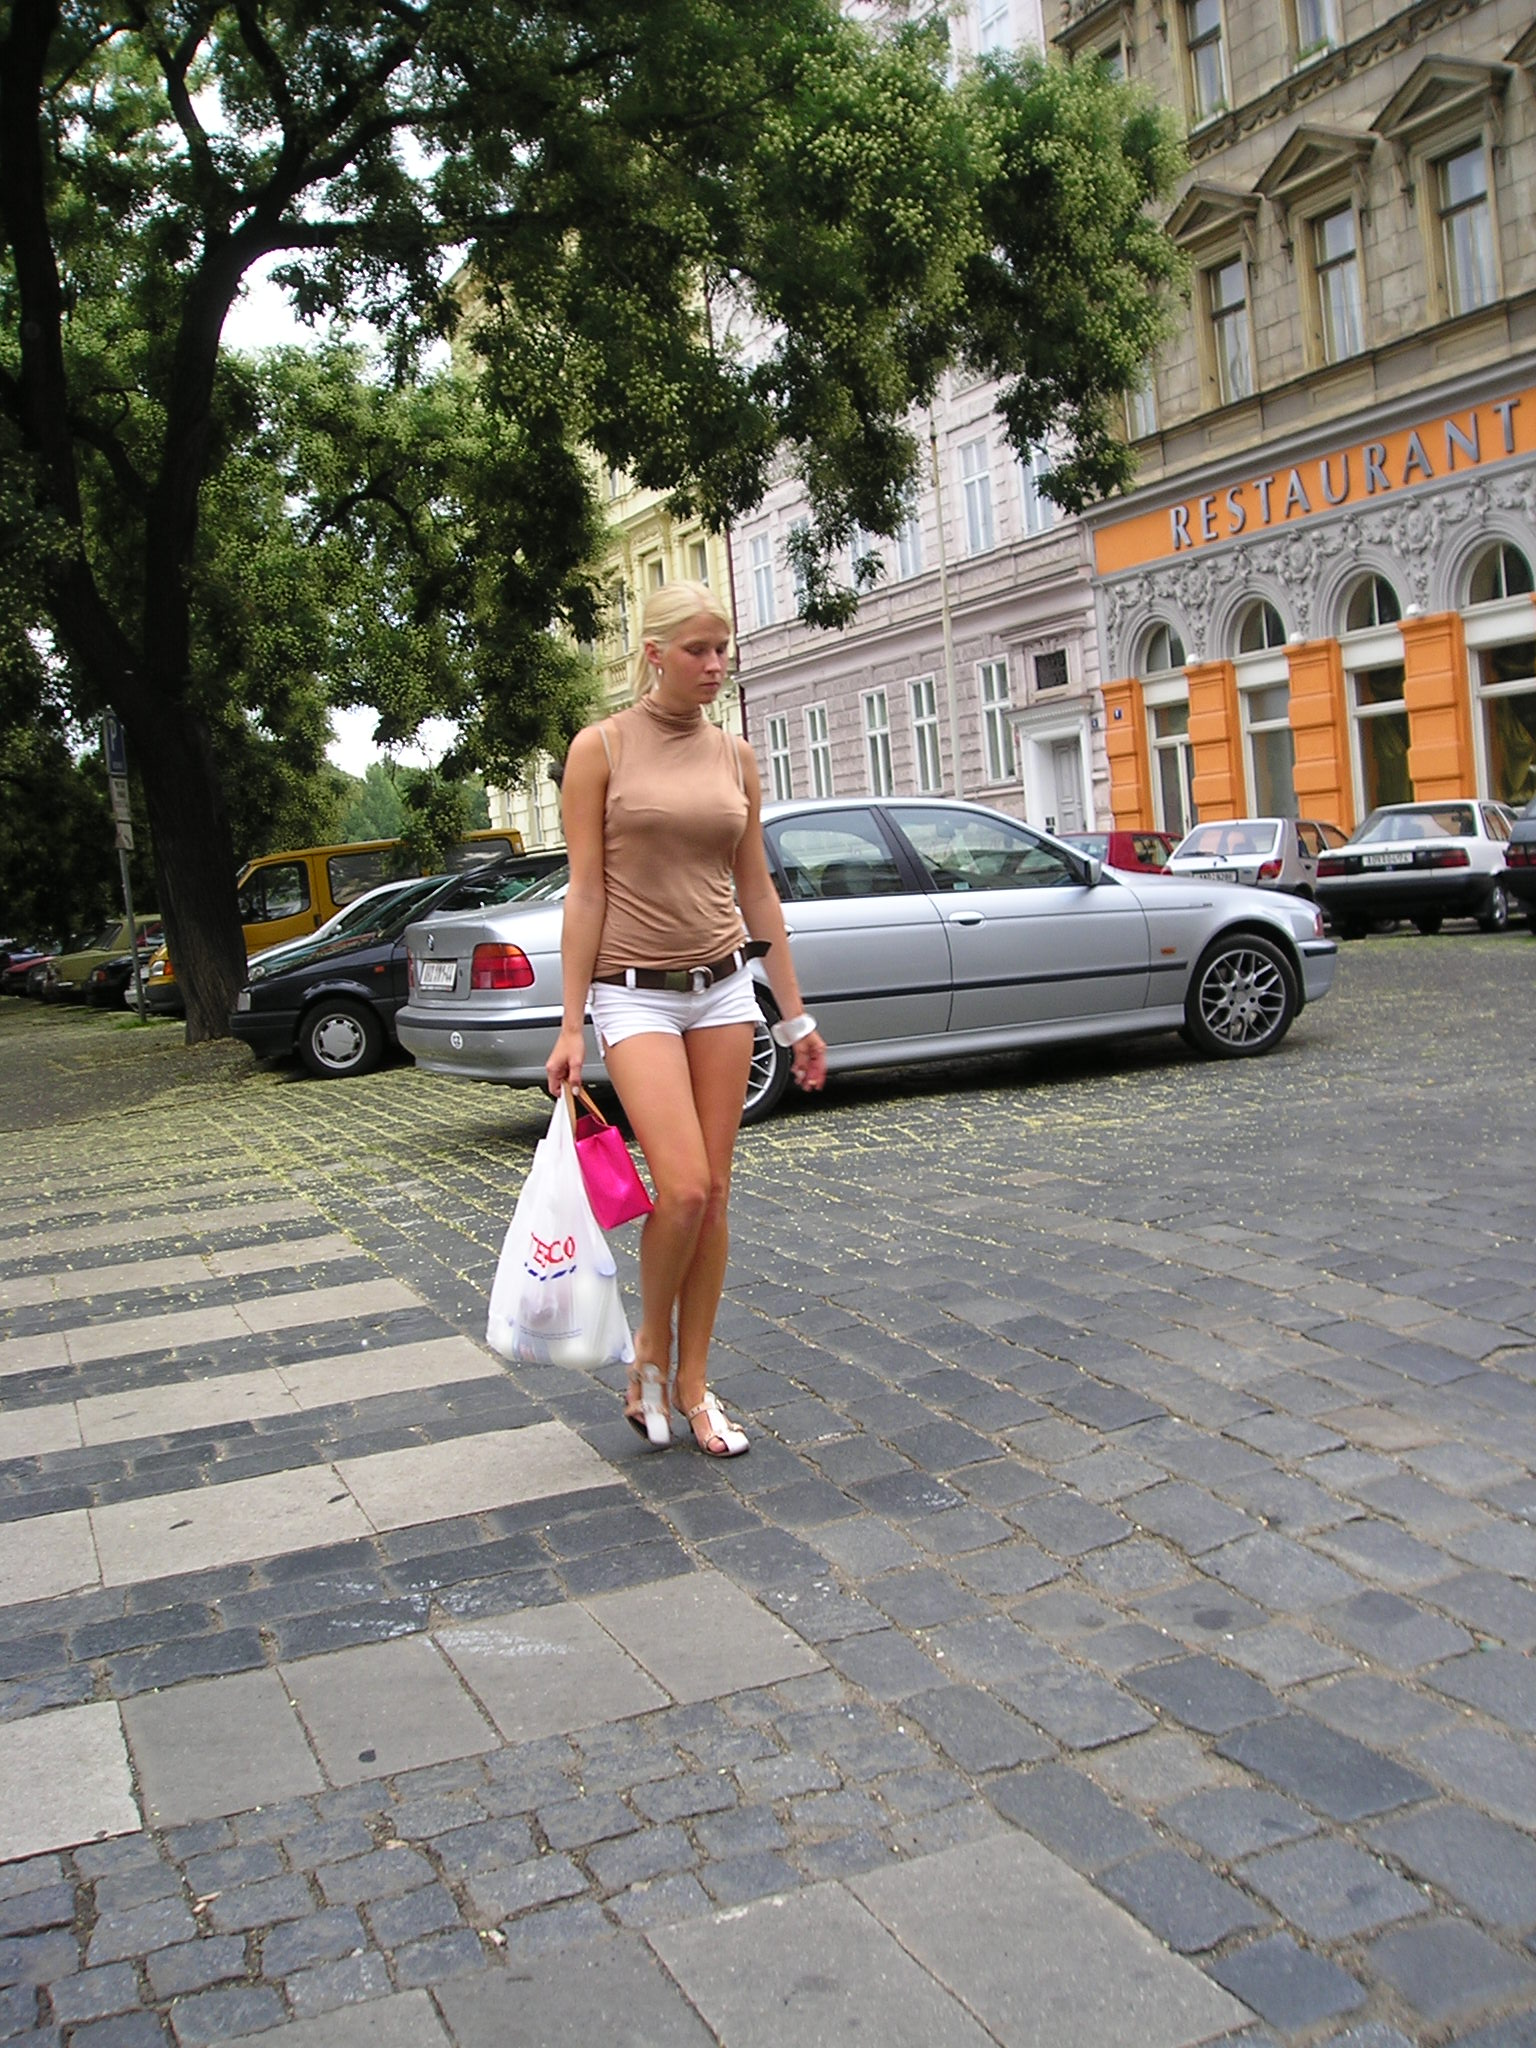 Remarkable, very Czech republic women street nude